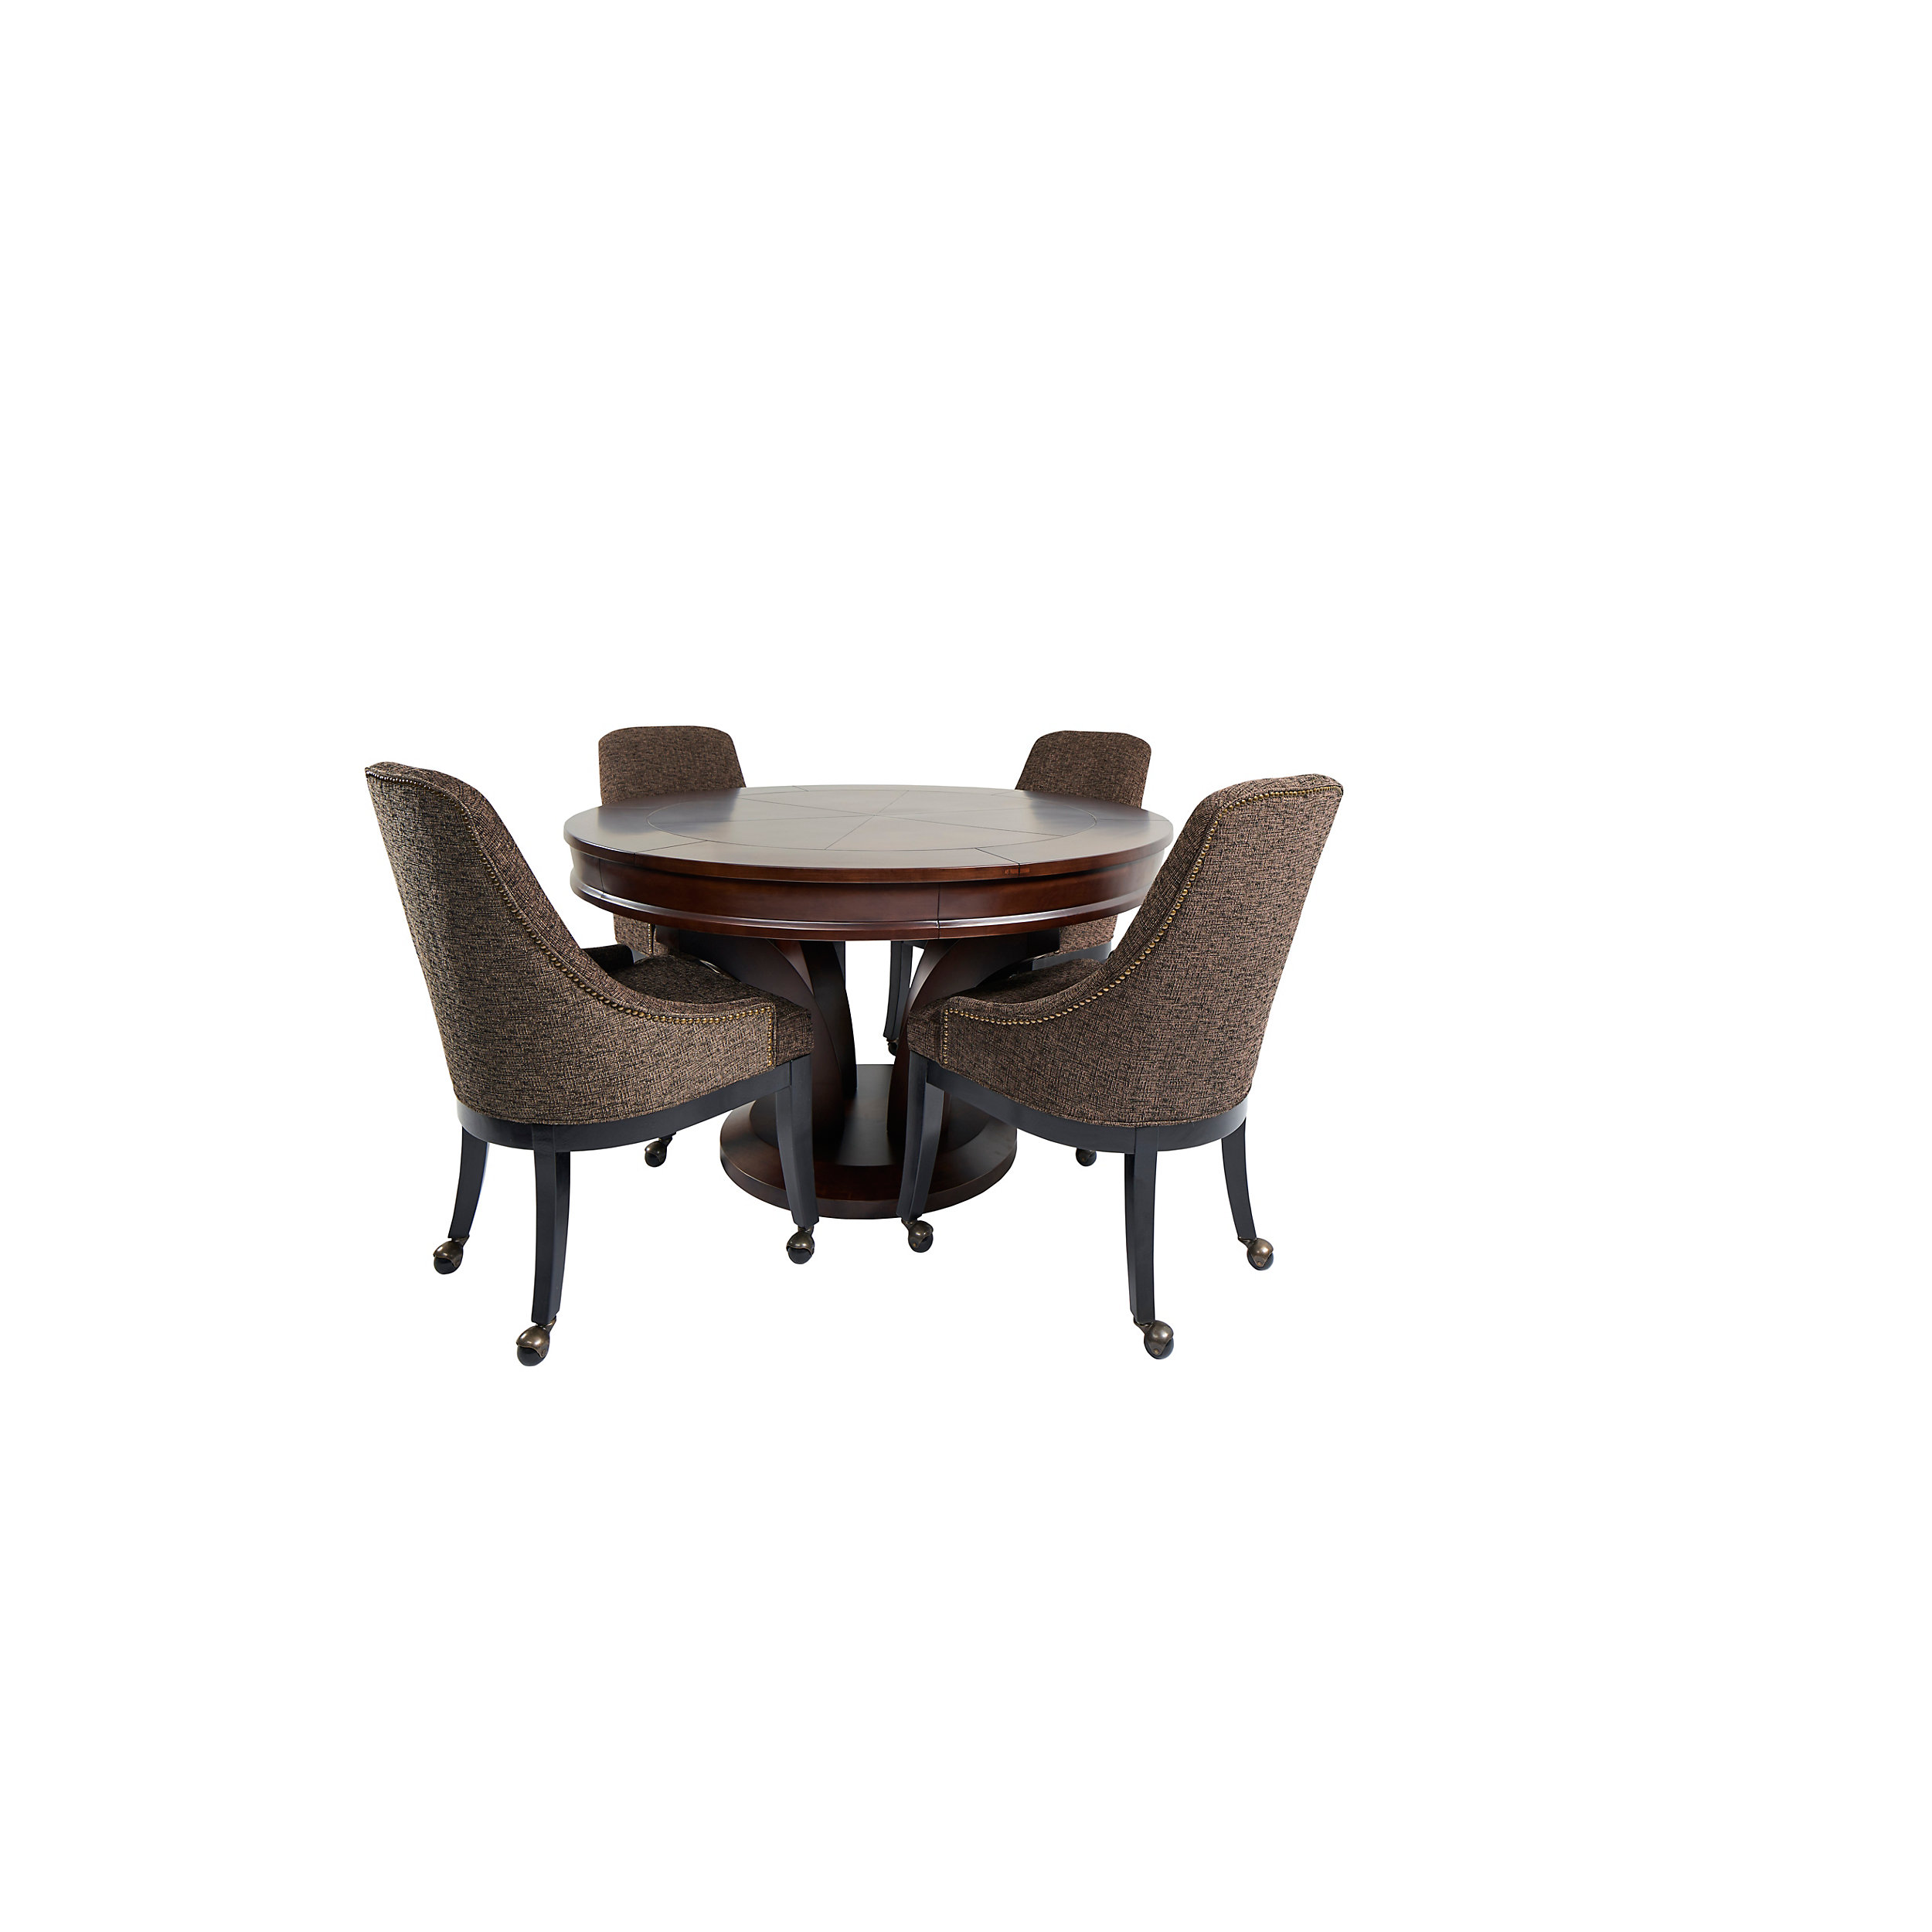 Round Game Table With Chairs, Round Gaming Table With Chairs